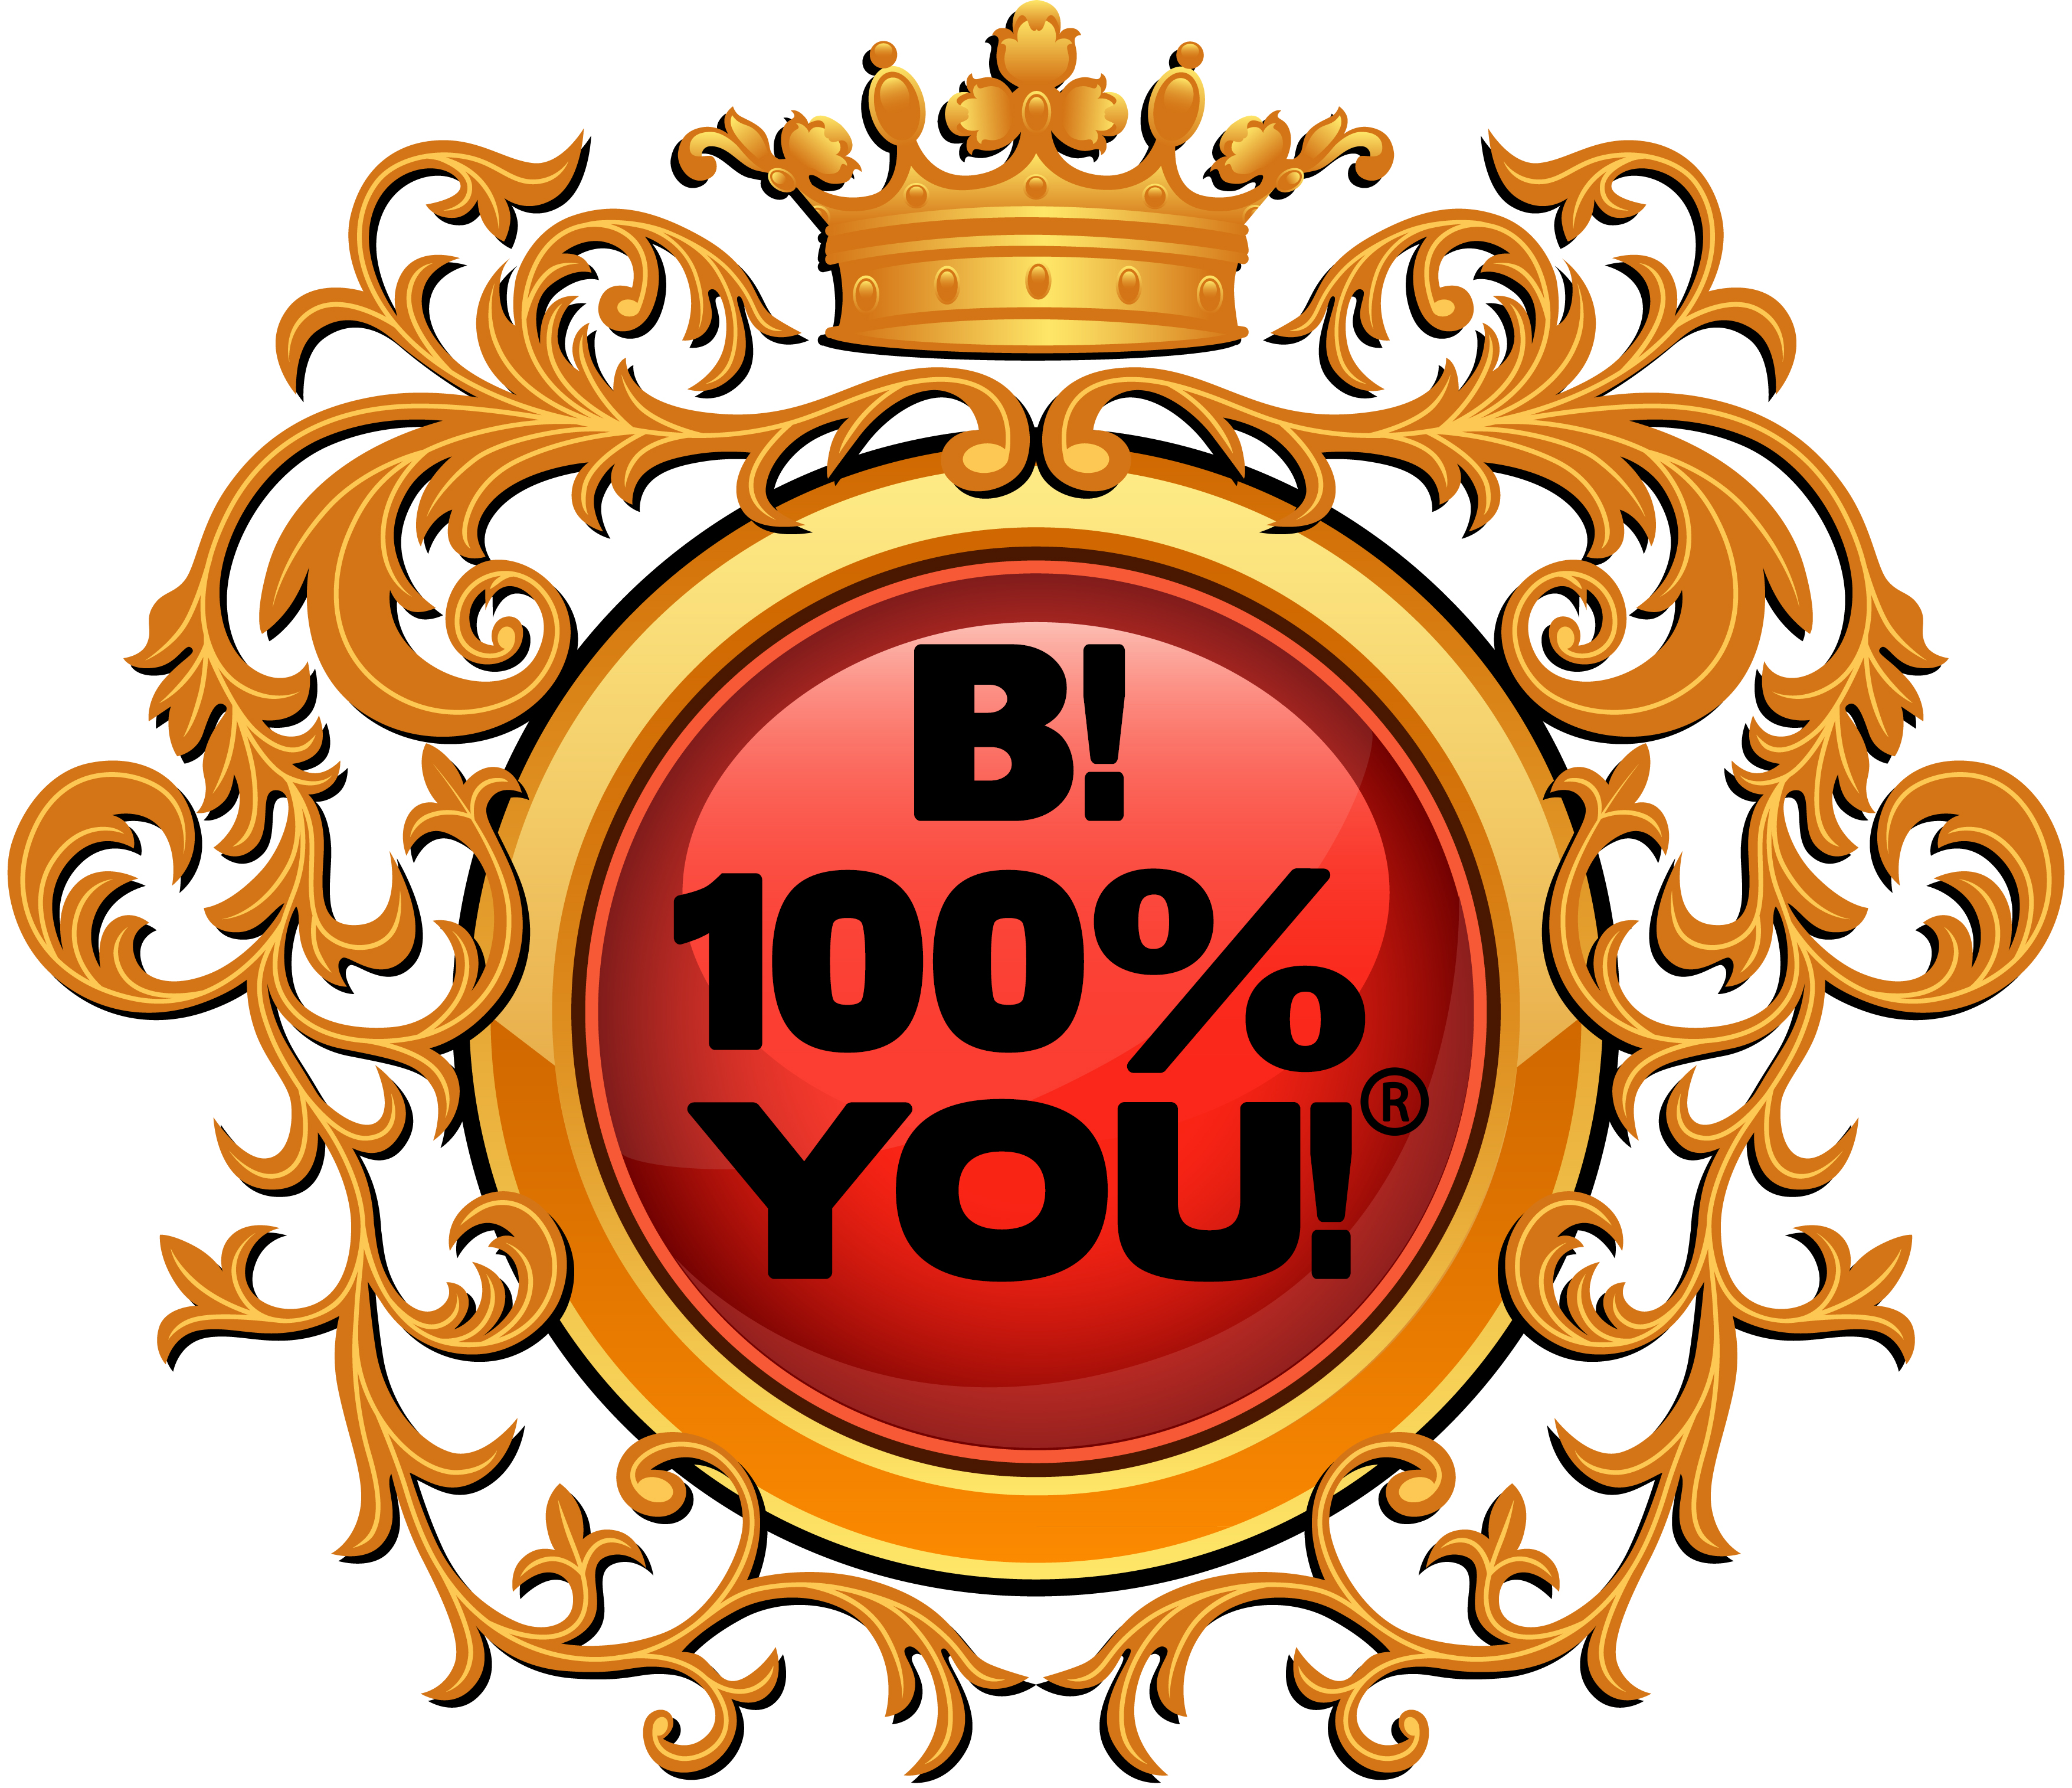 B!100%YOU